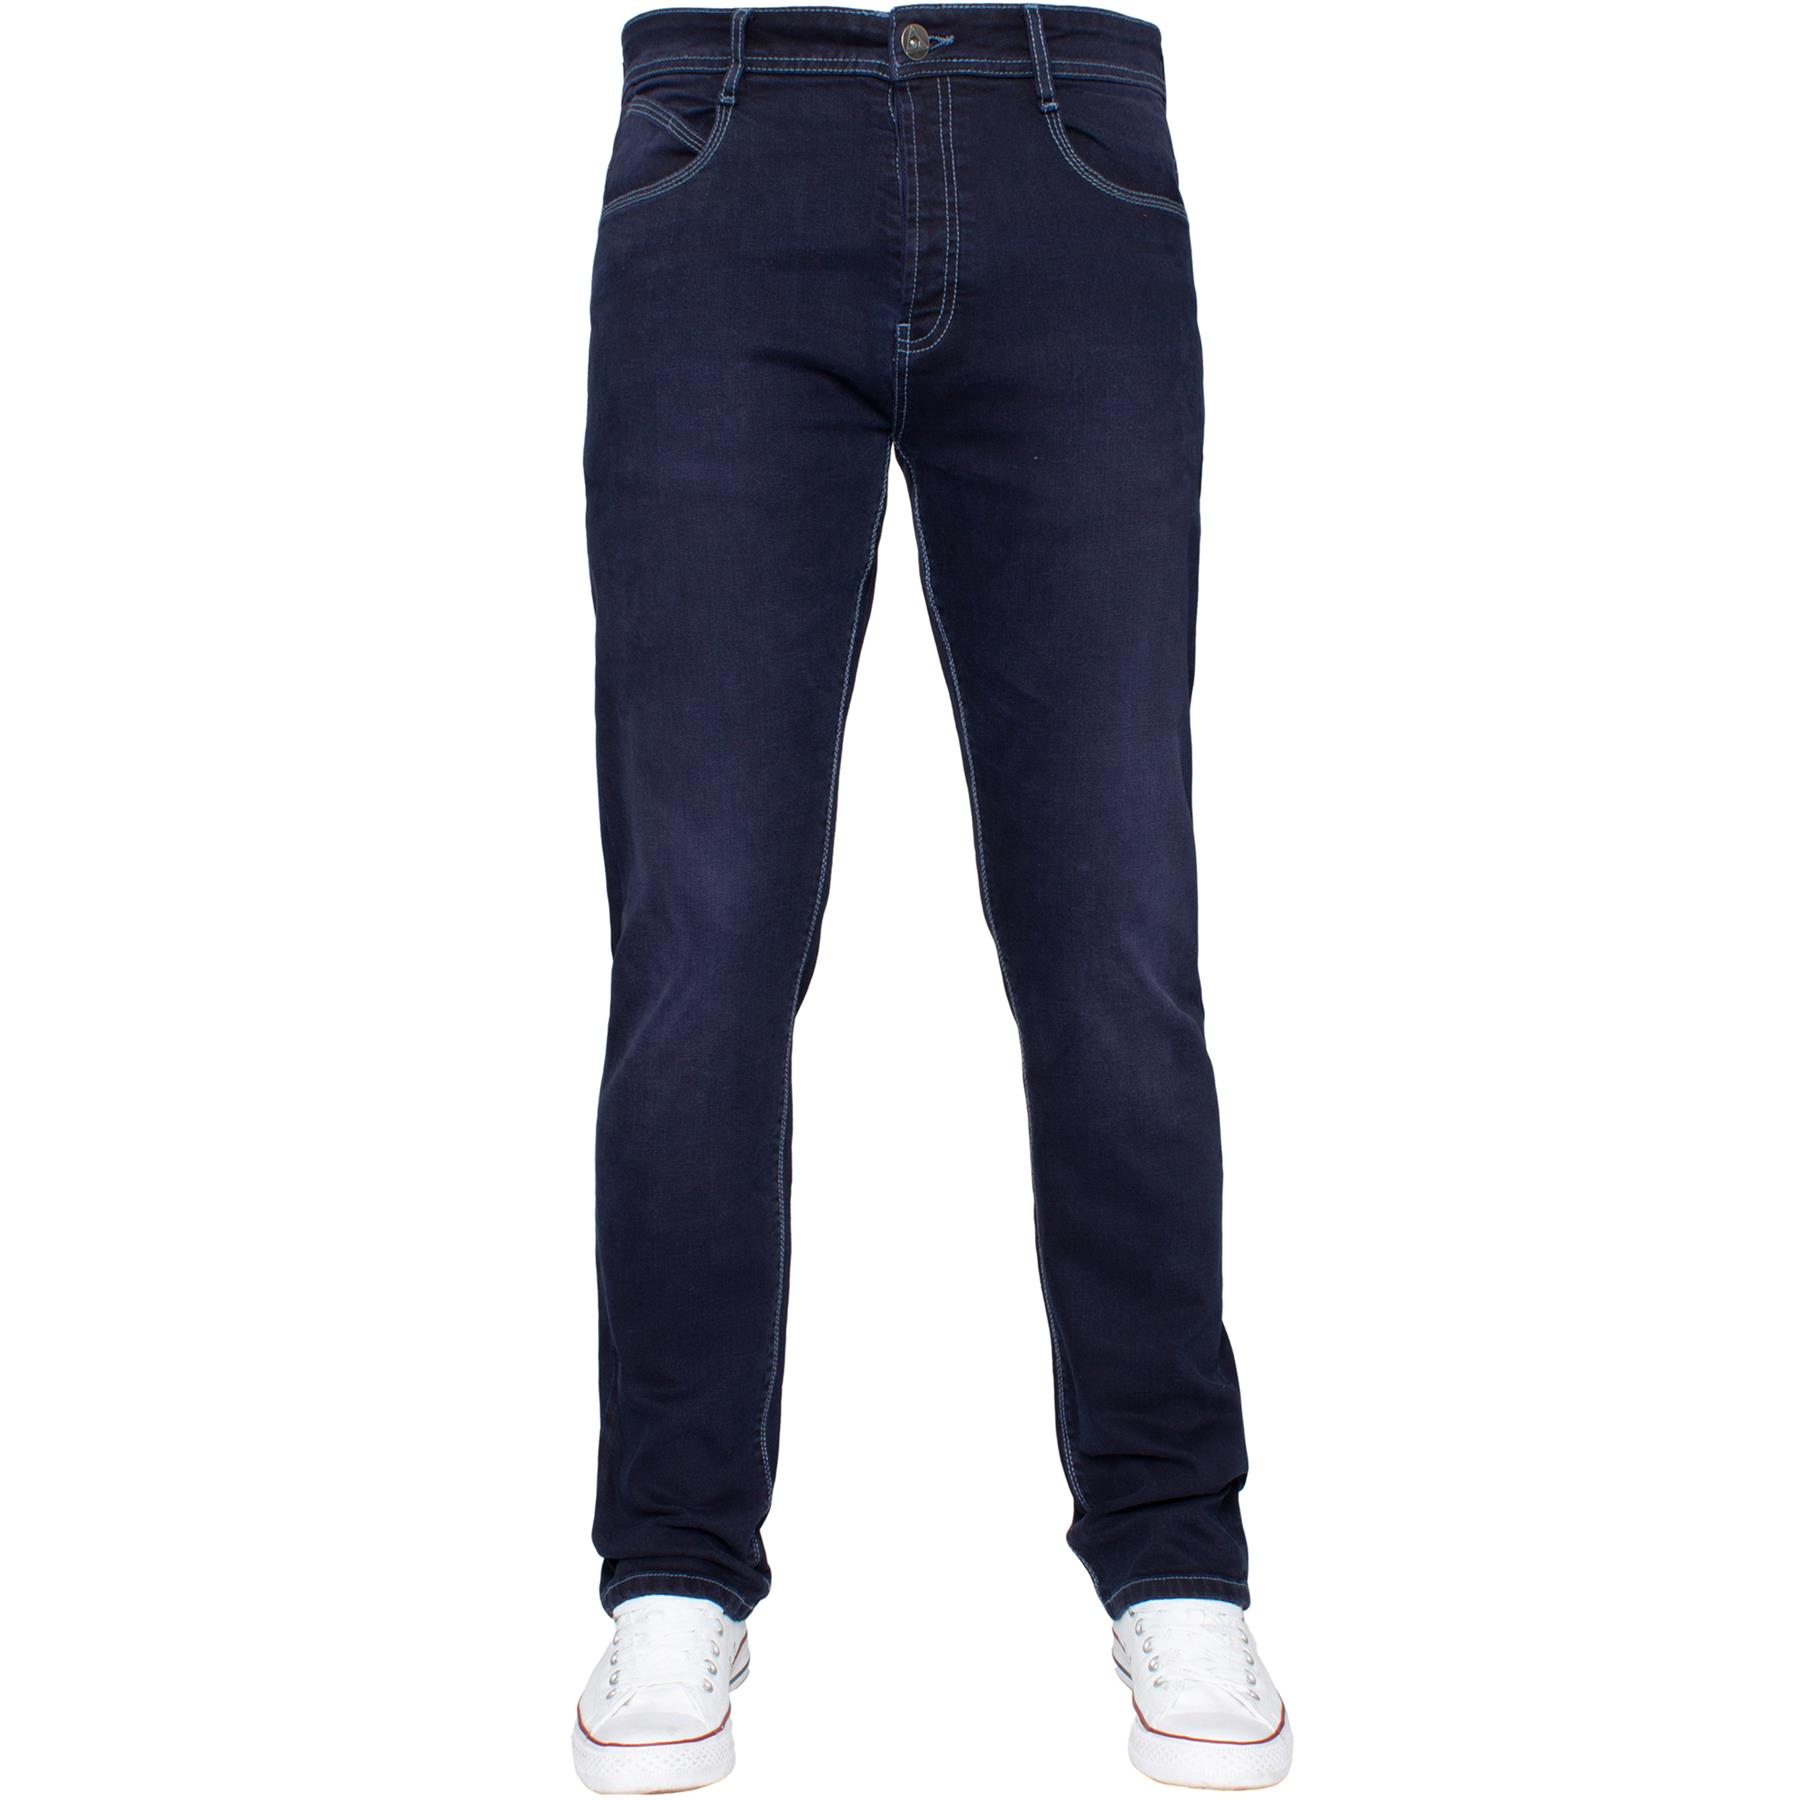 Eto-Designer-Mens-Tapered-Jeans-Slim-Fit-Stretch-Denim-Trouser-Pants-All-Waists thumbnail 23